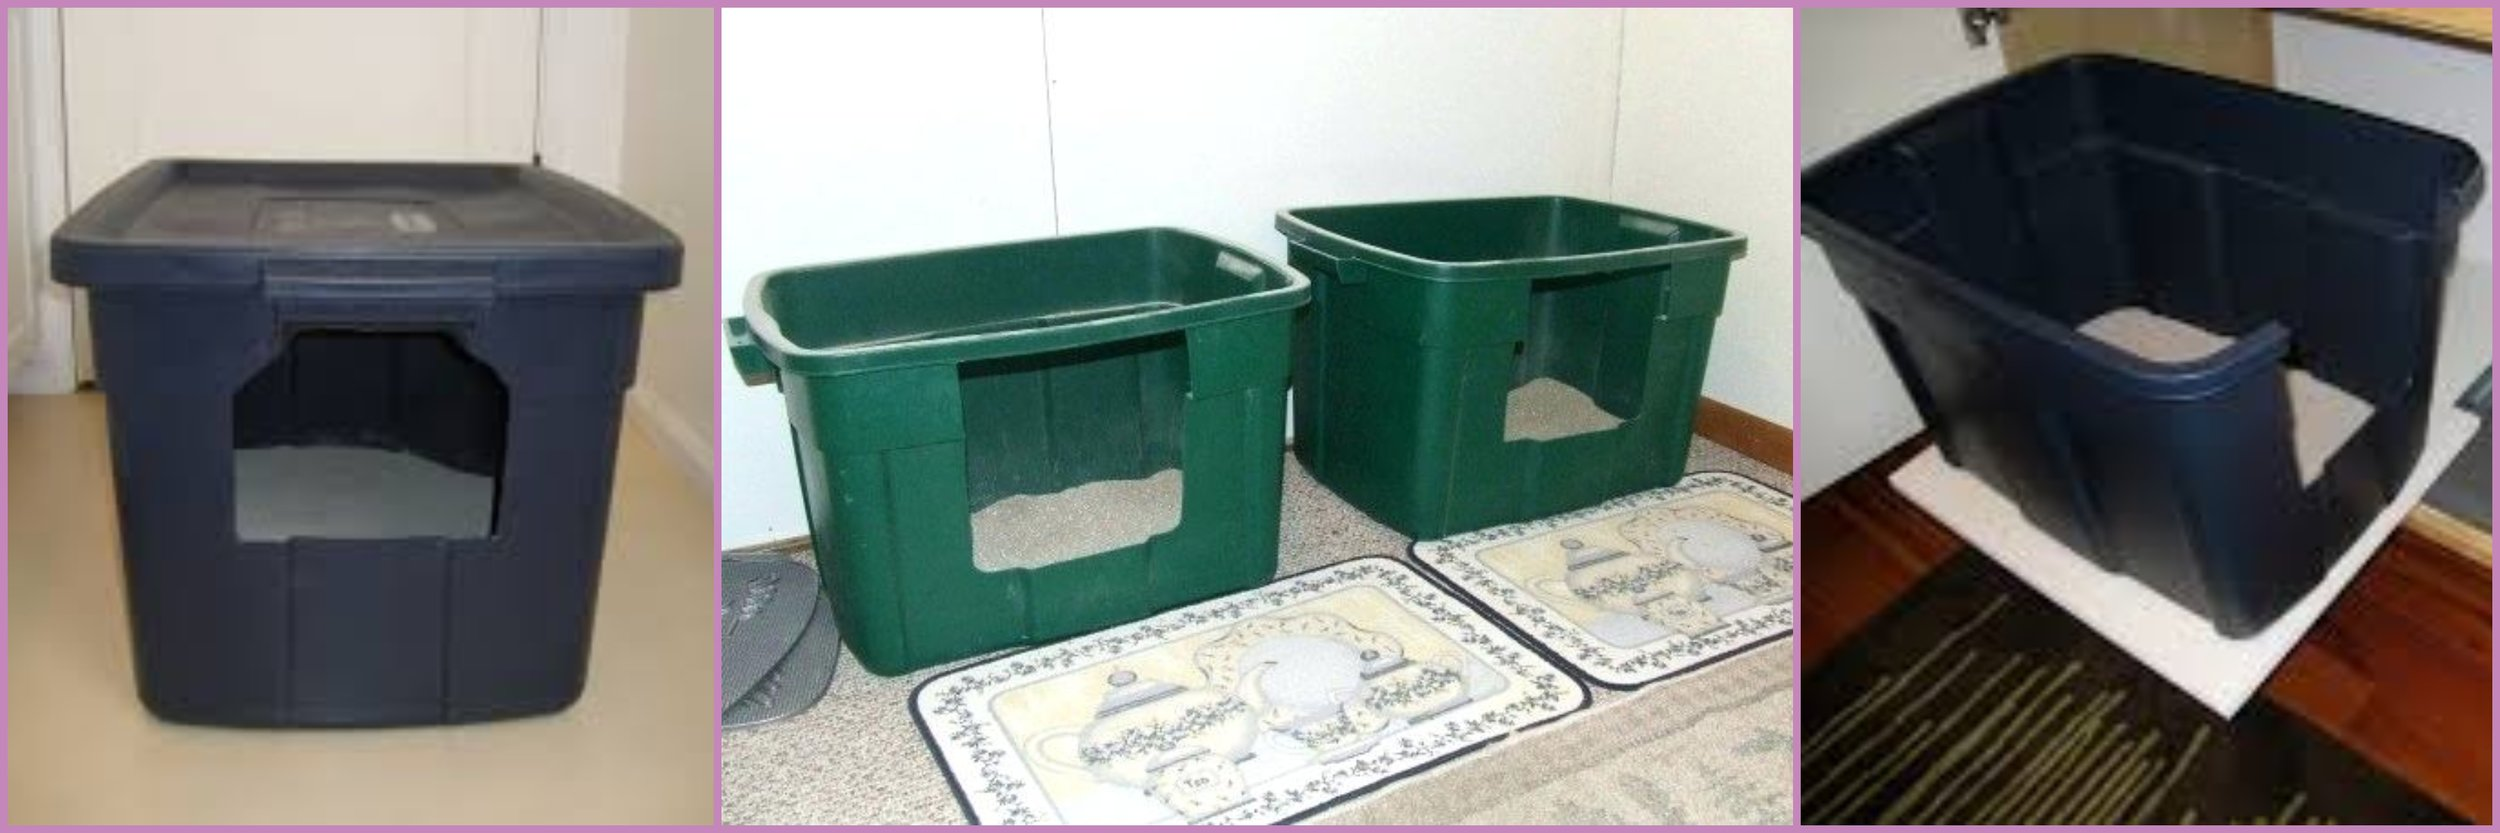 Home Crafted Litter Boxes